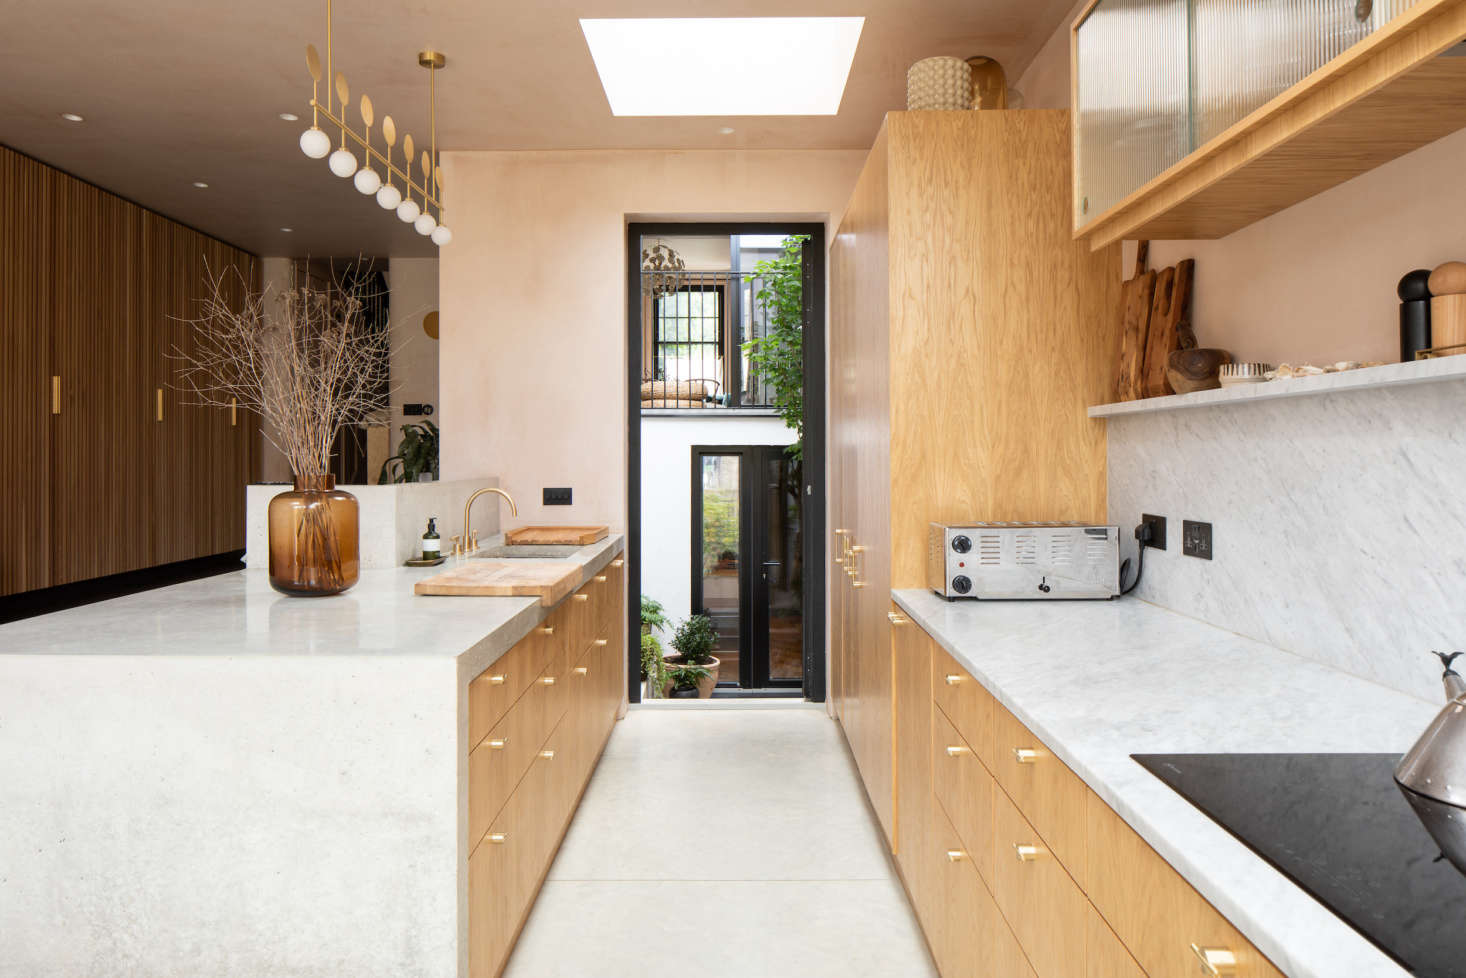 A steel and glass door opens into the interior courtyard.